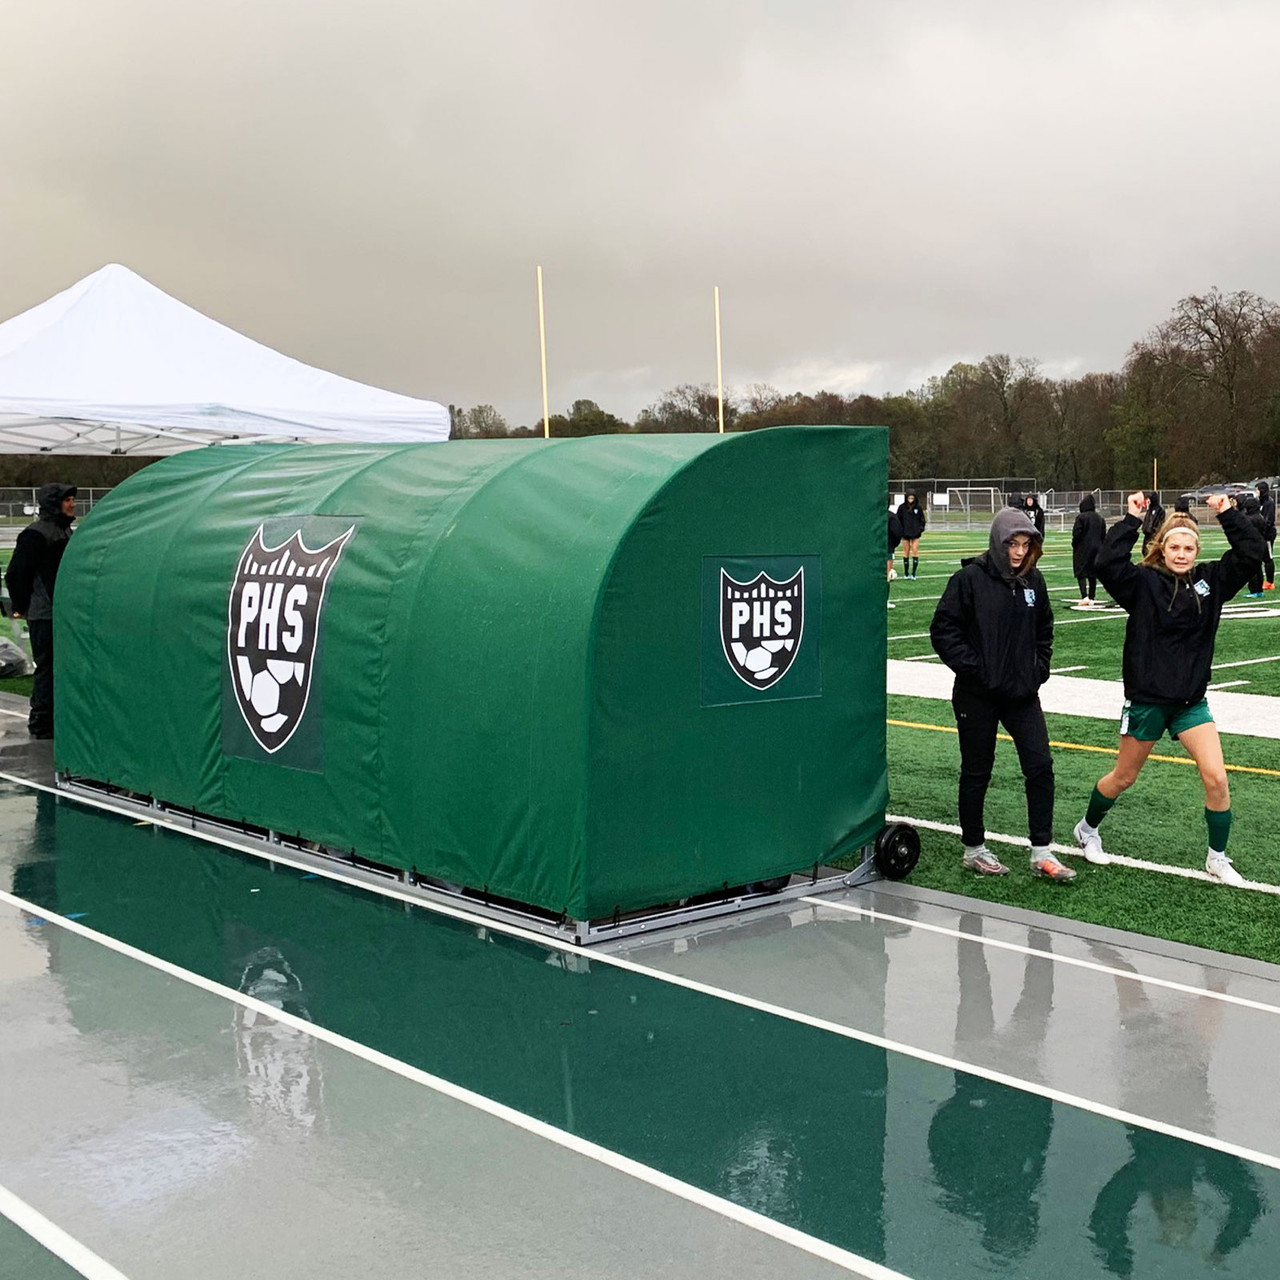 c5d9b0533 ... MVP III Stadium Sports Team Shelter Bench Cover | Soccer Innovations  Sport Bench Shelter Covers ...